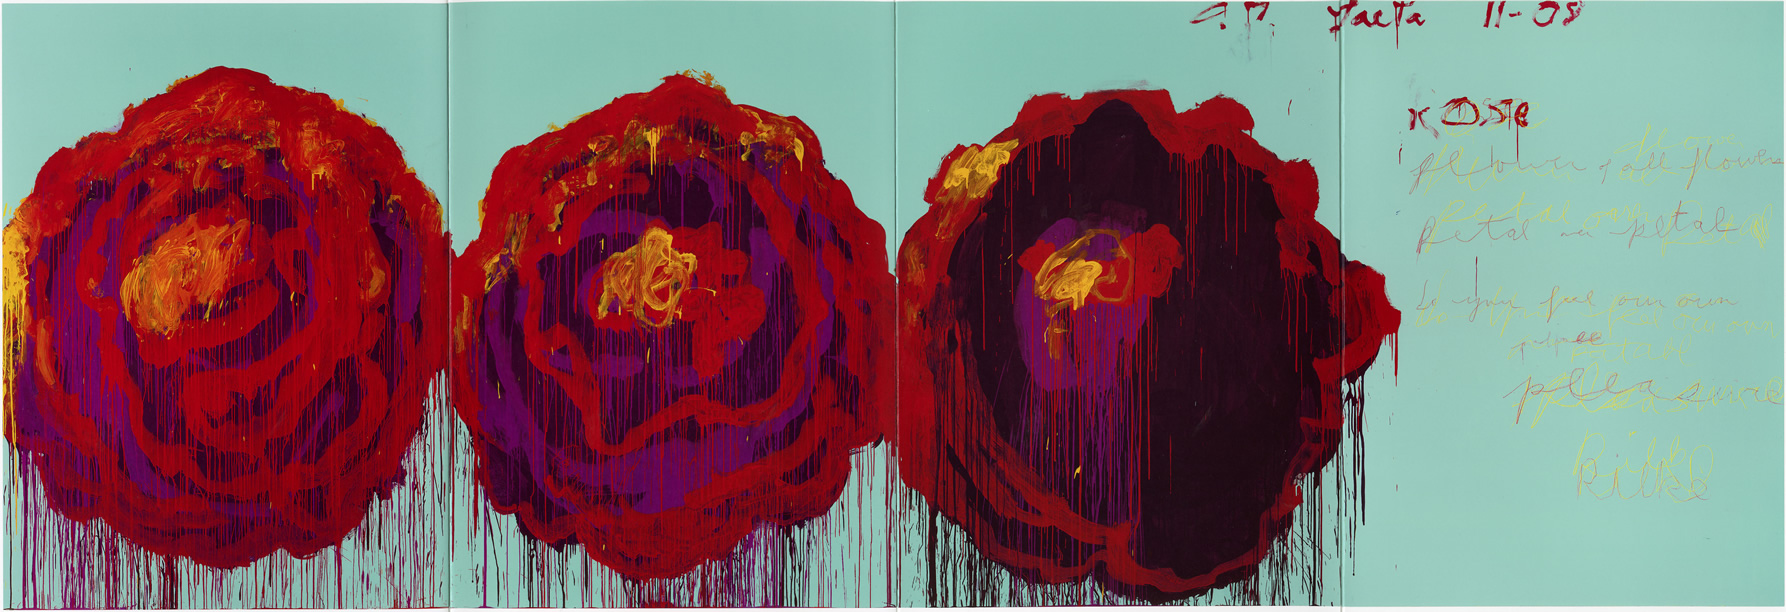 The rose %28iv%29  2008  acrylic on plywood 99 14 x 291 14 inches %28252 x 740 cm%29 original